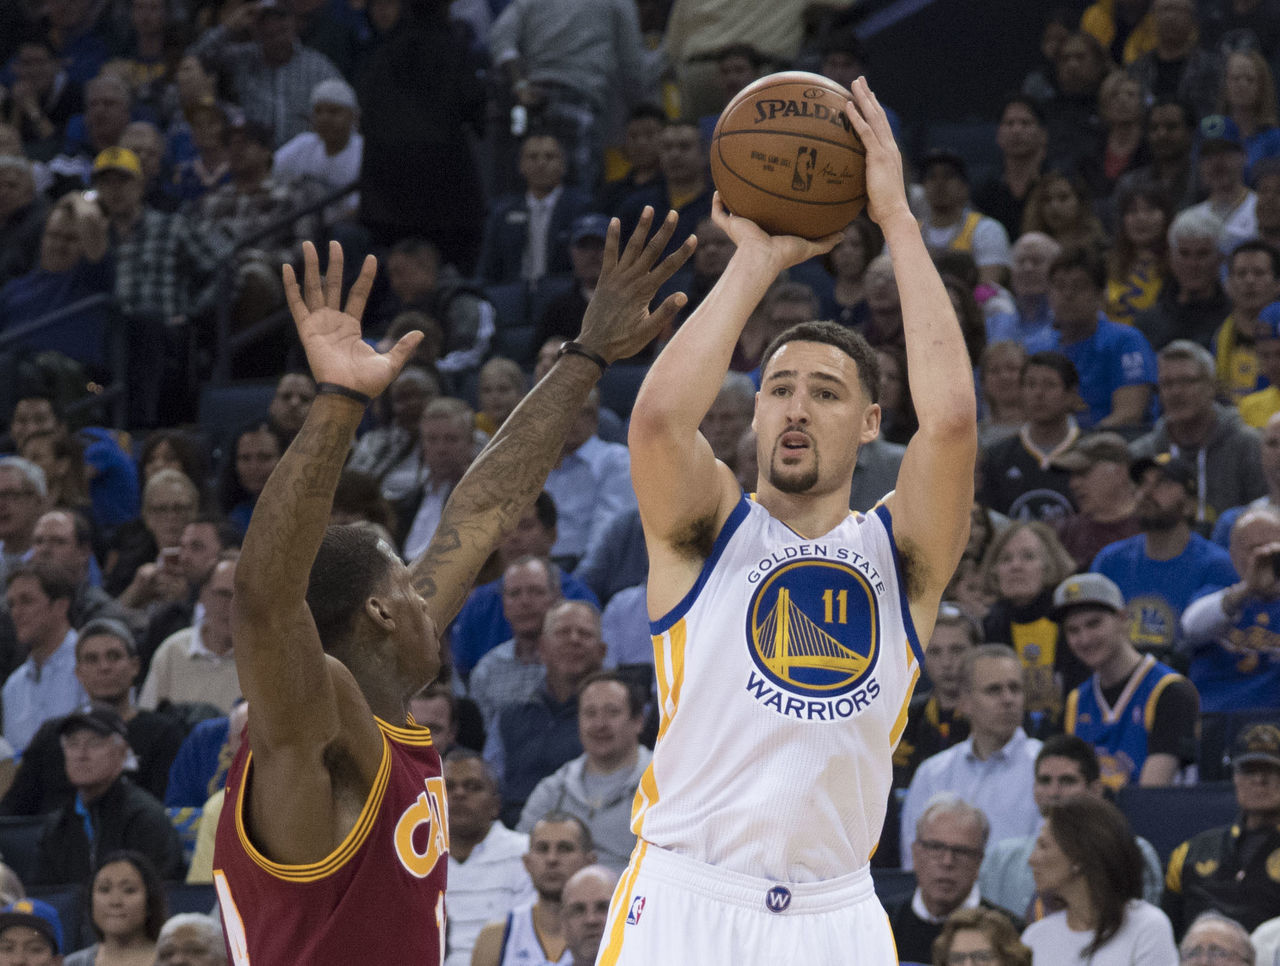 Cropped 2017 01 17t034151z 1069900003 nocid rtrmadp 3 nba cleveland cavaliers at golden state warriors